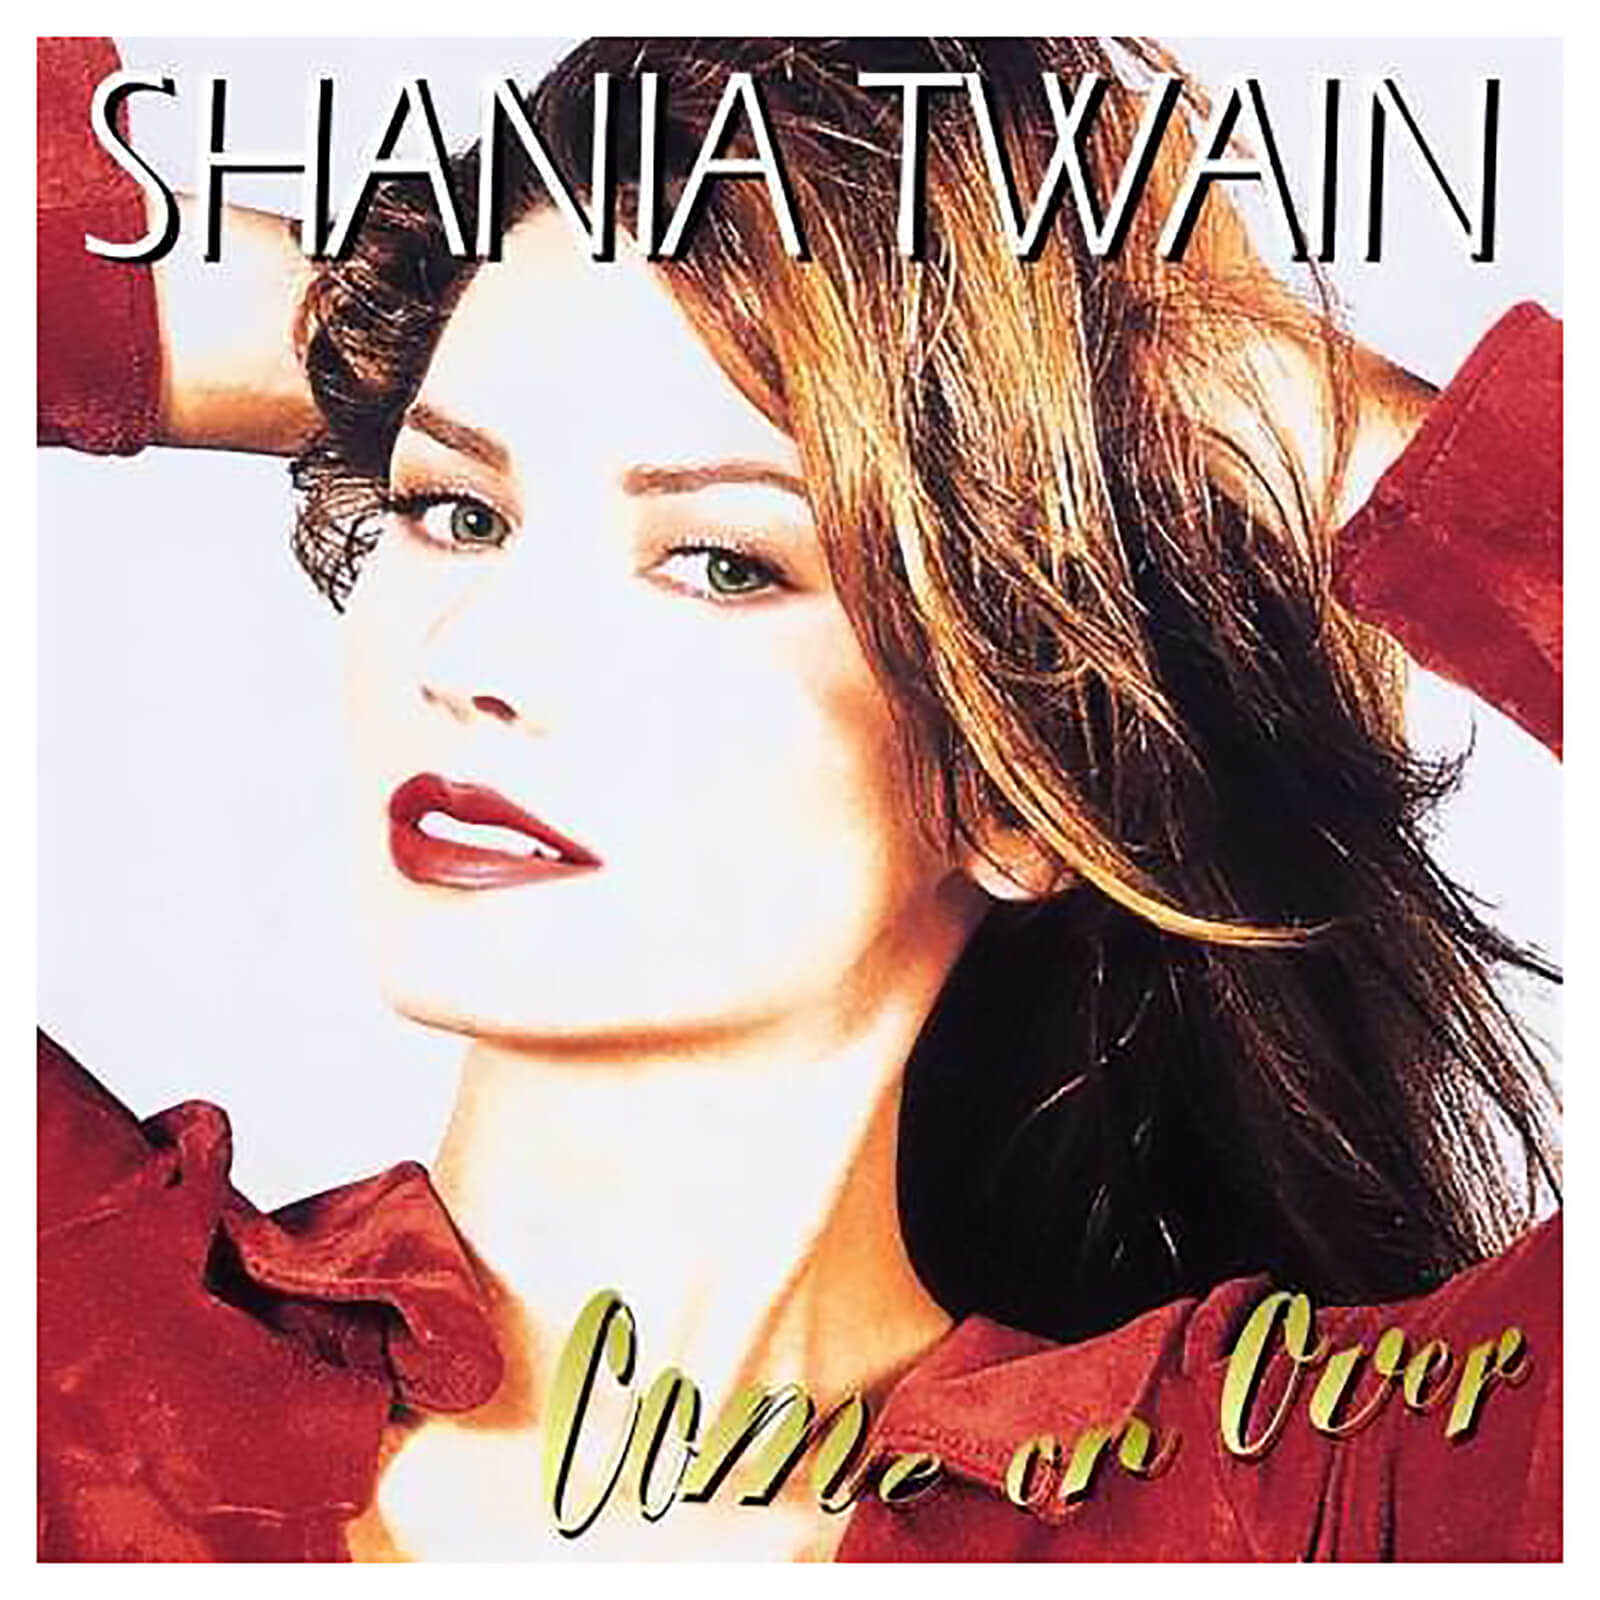 Shania Twain - Come On Over - Vinyl